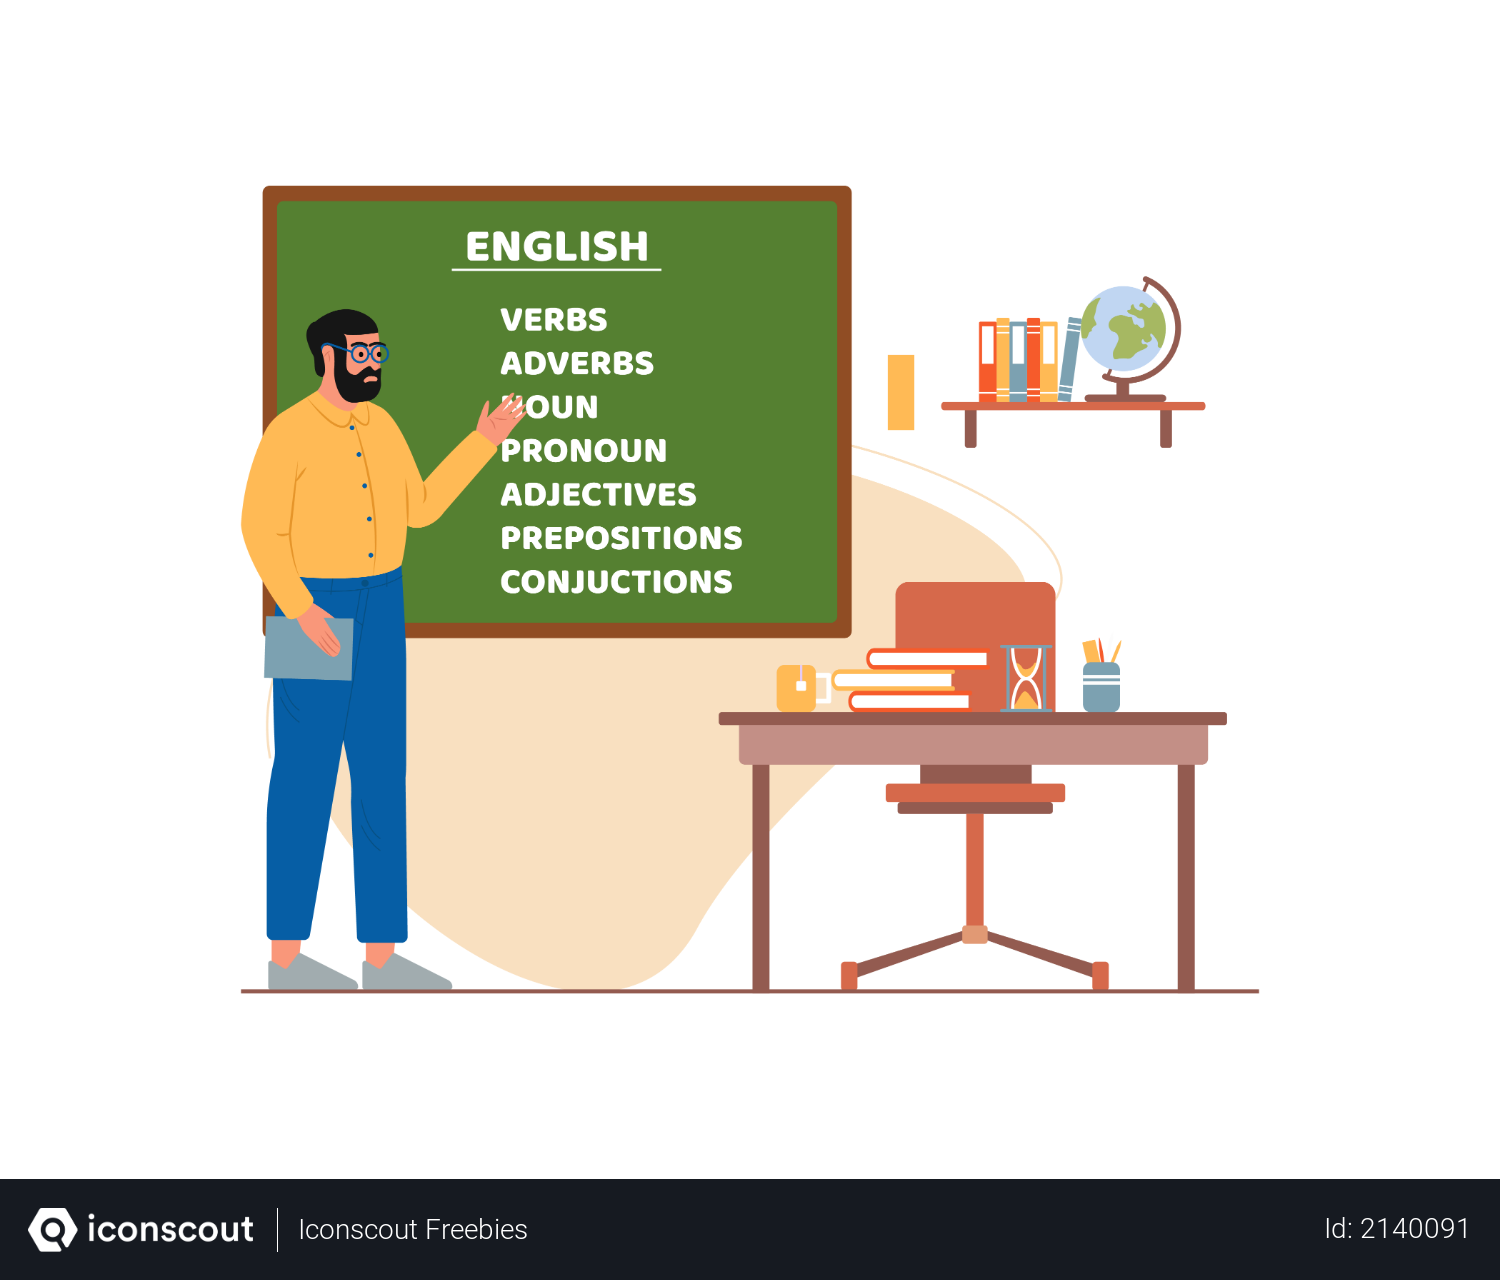 Sir teaching english in school Illustration